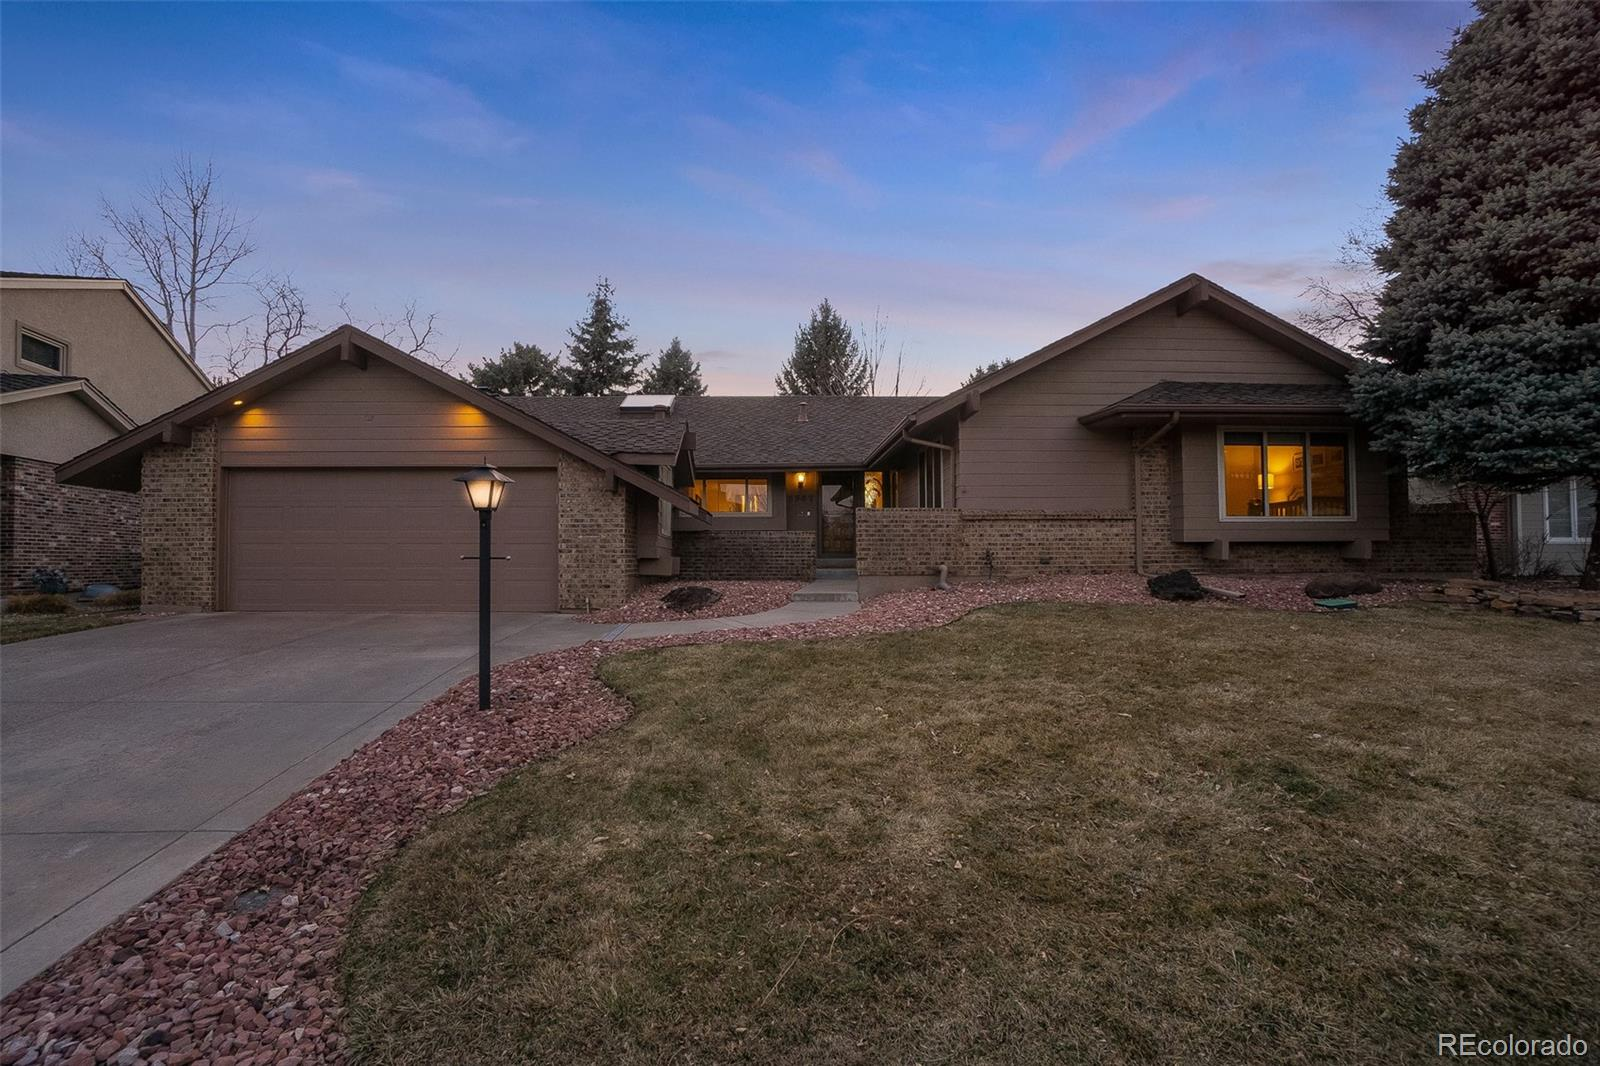 MLS# 9898024 - 1 - 5967 S Glencoe Way, Centennial, CO 80121